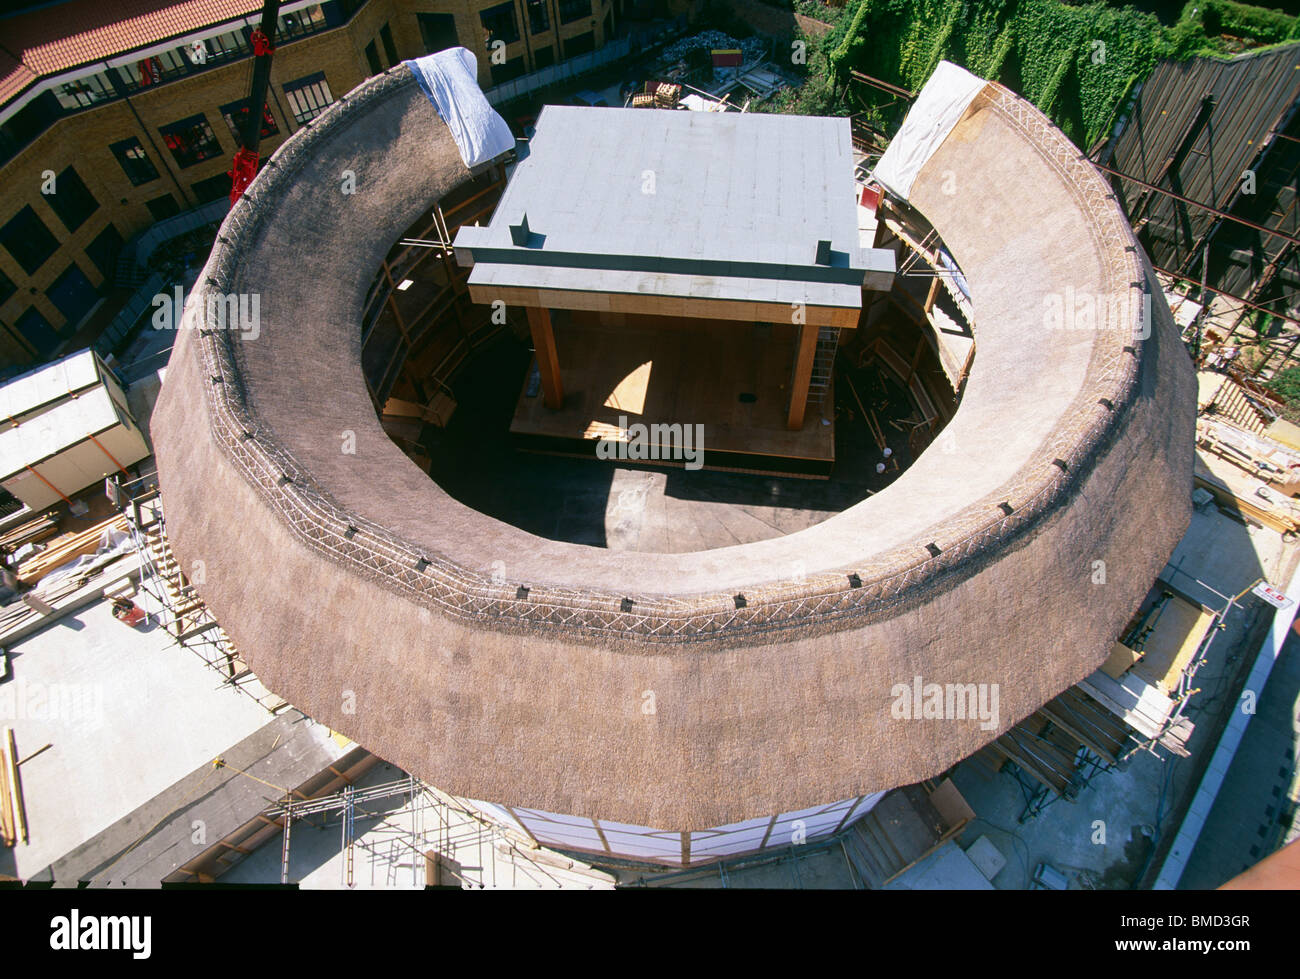 The re-created Globe theatre, Bankside, London - Stock Image